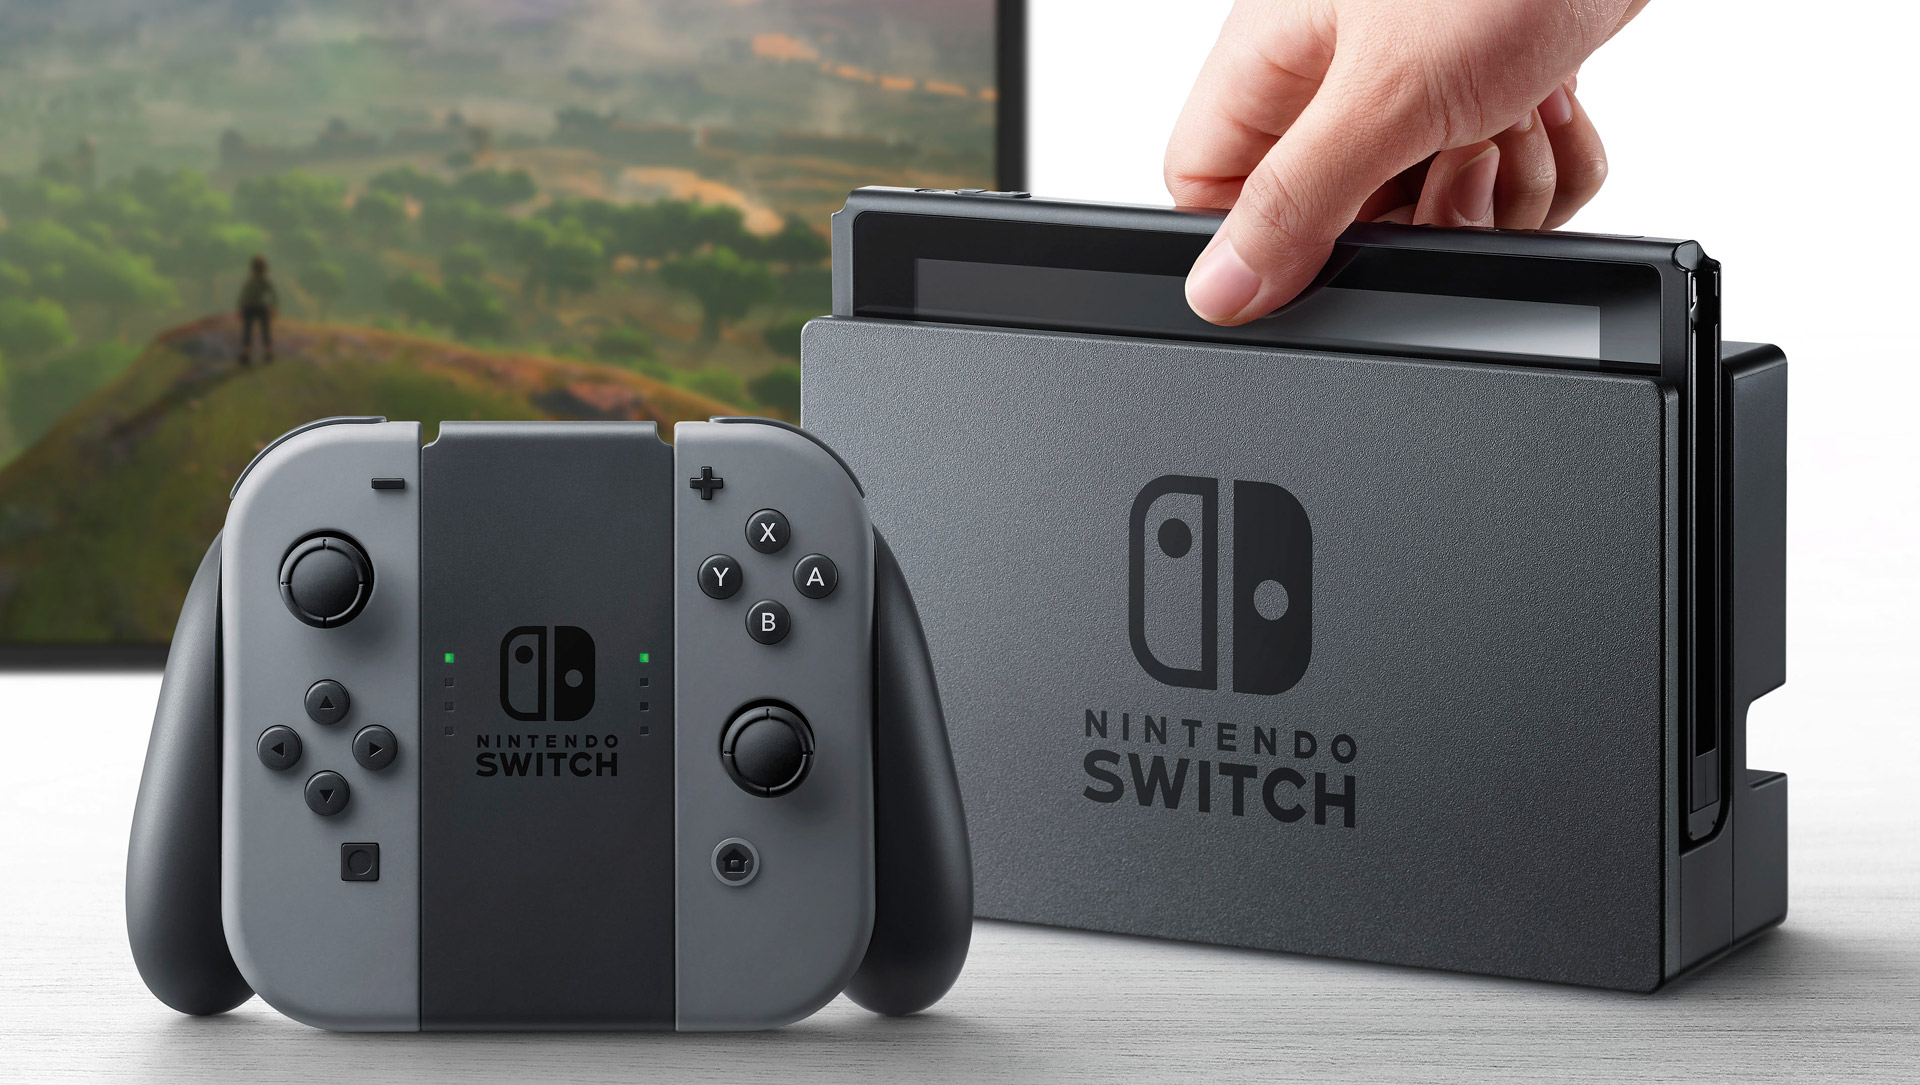 Nintendo Switch Will Link Digital Purchases To Your Nintendo Account